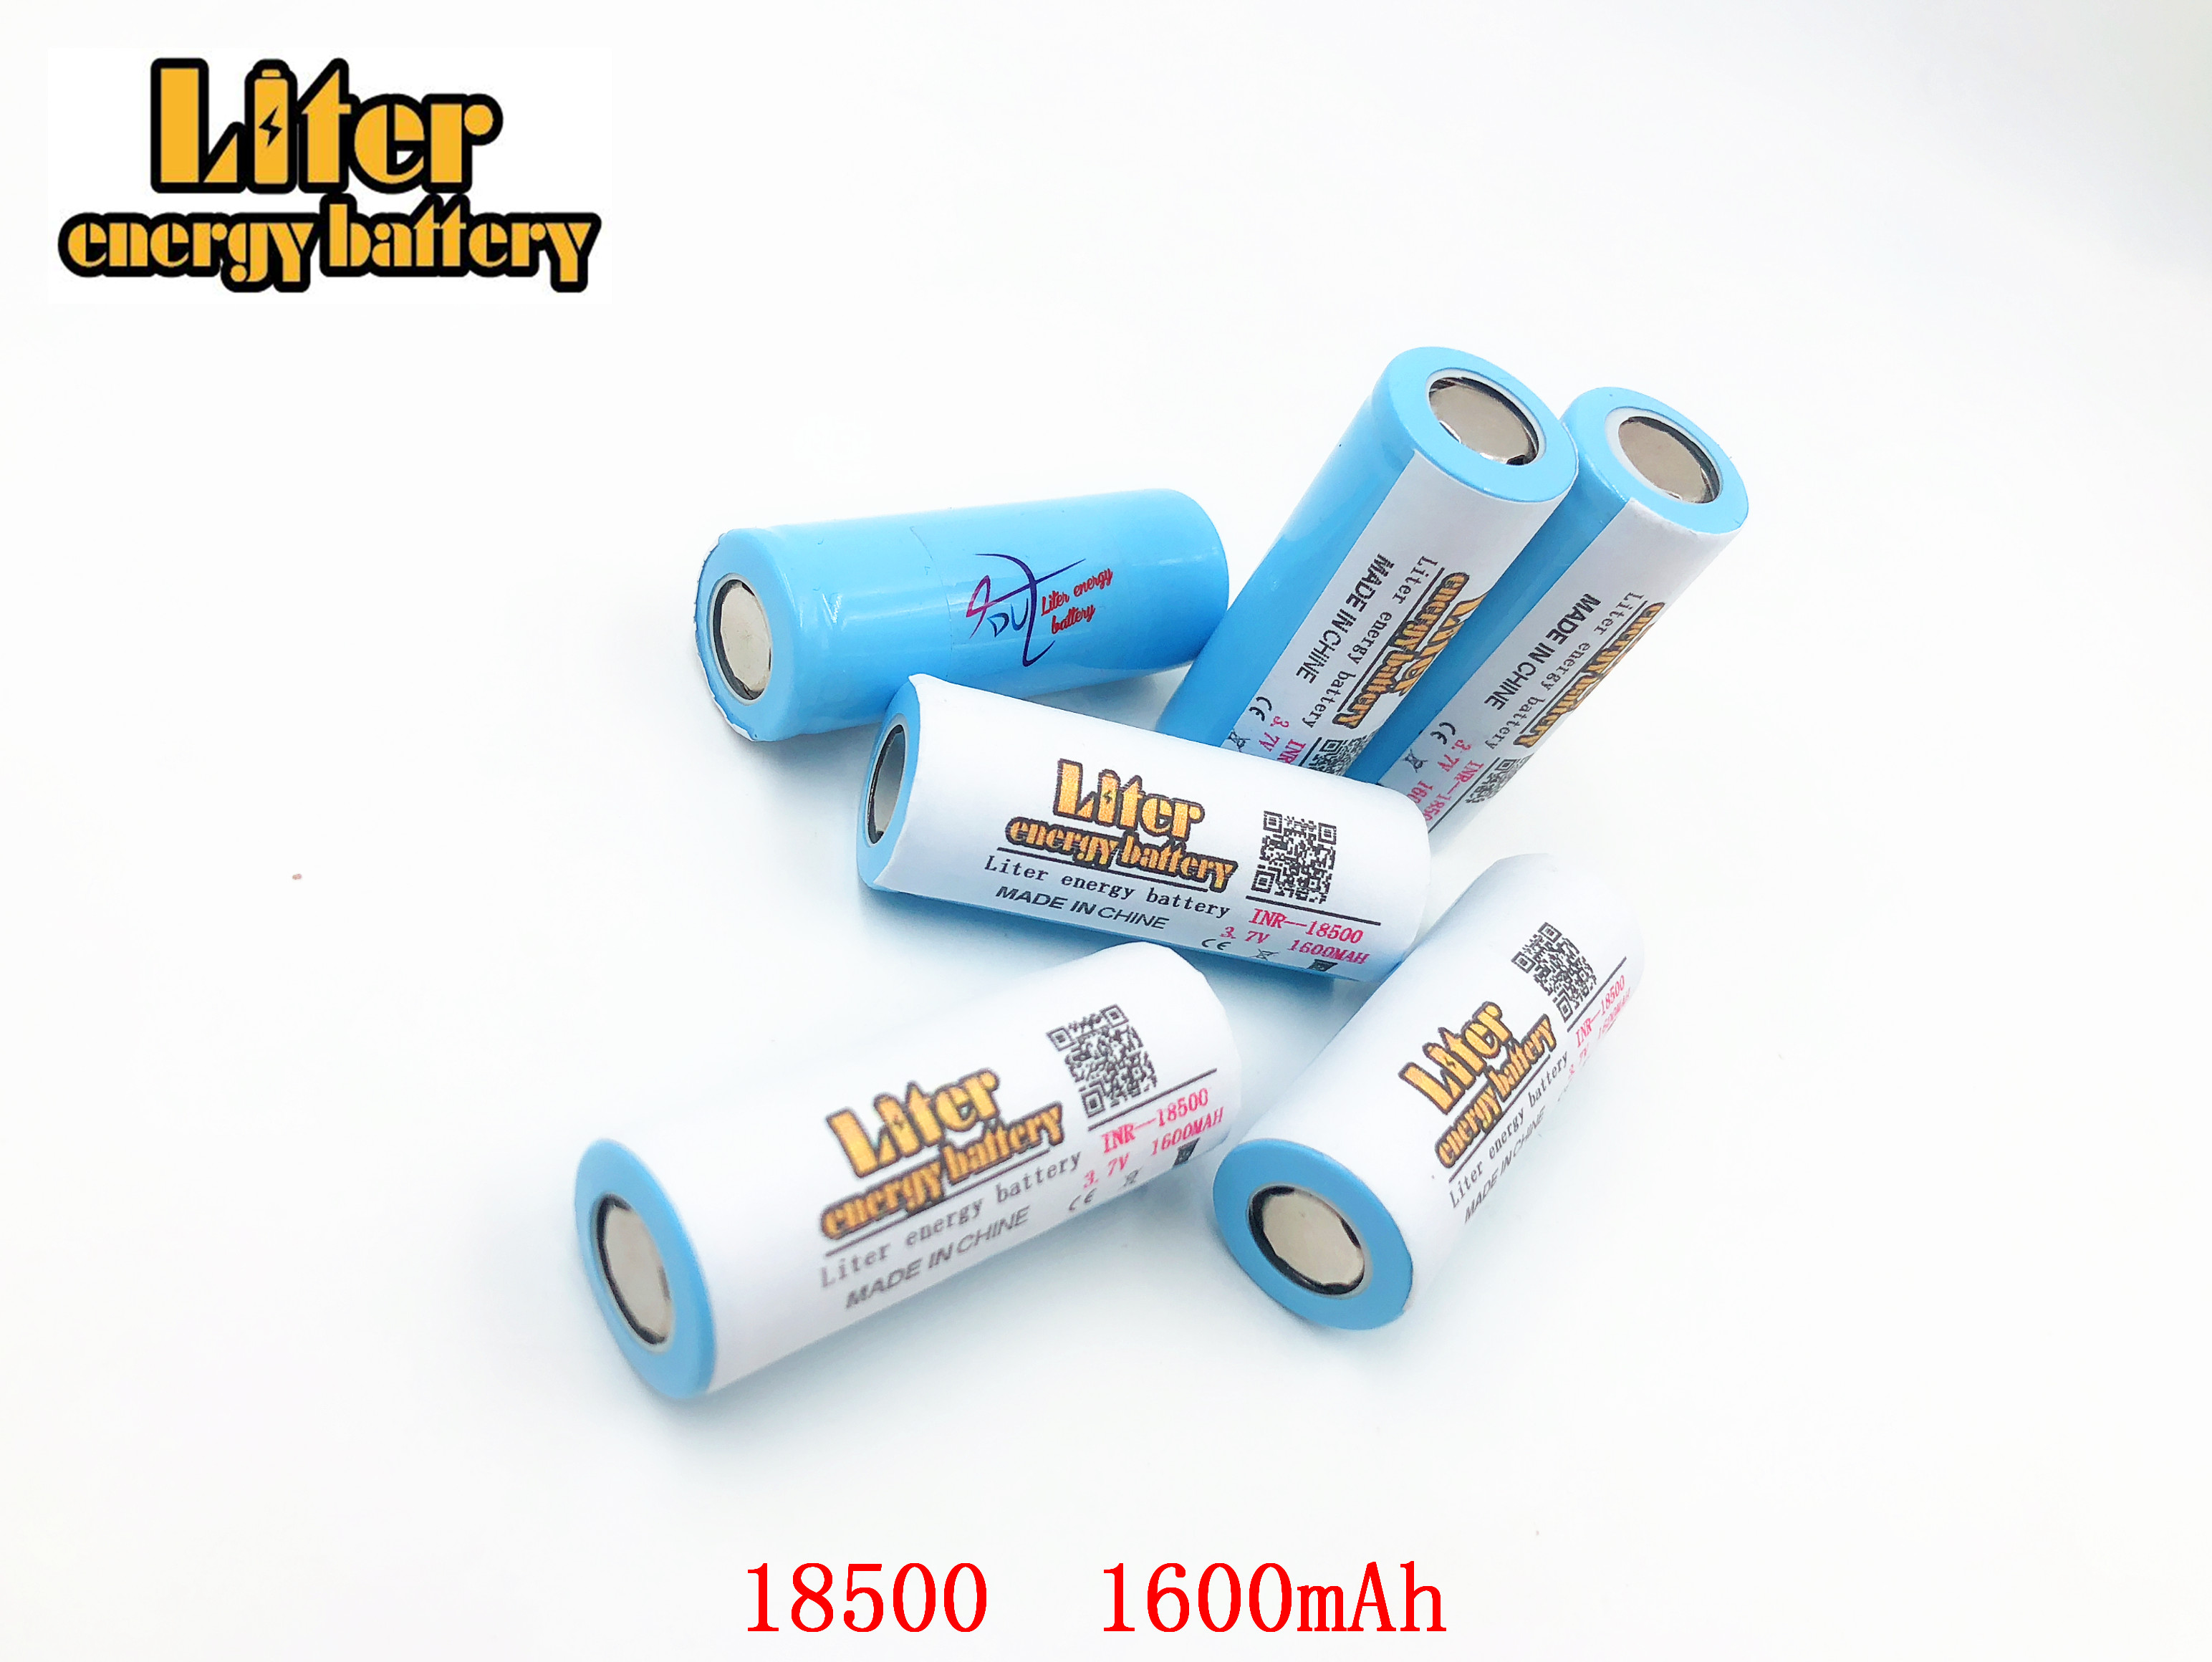 Original Liter energy <font><b>battery</b></font> <font><b>ICR</b></font> <font><b>18500</b></font> <font><b>Battery</b></font> 3.7V 1600mAh li-ion Rechargeable <font><b>Battery</b></font> protective storage box image